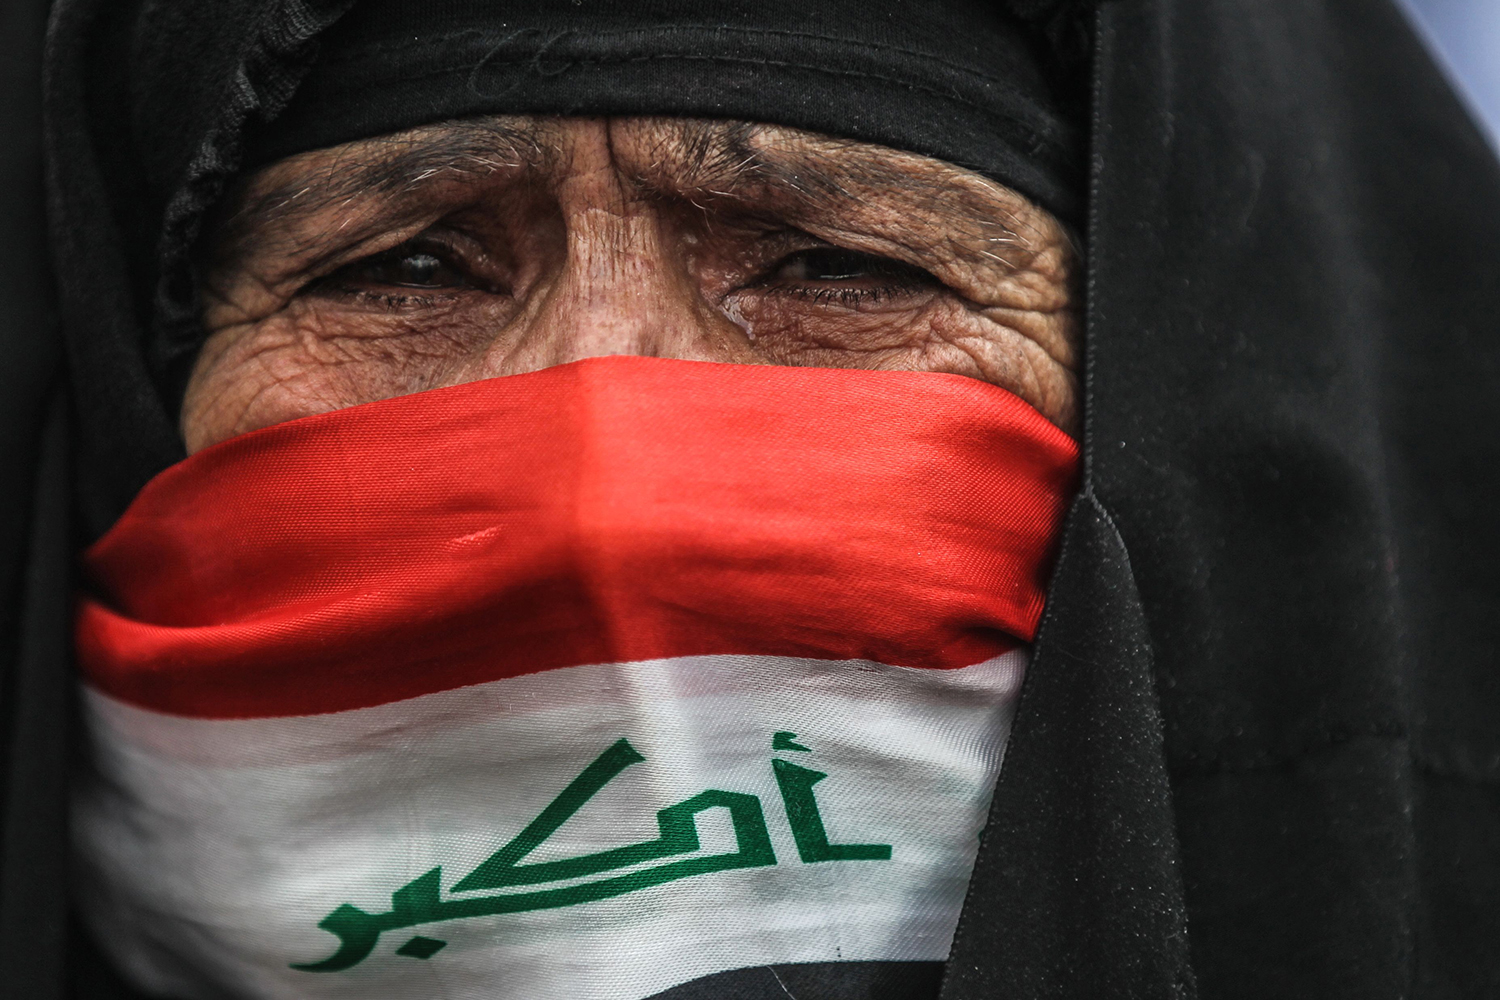 An Iraqi woman, her face covered with a national flag, cries as she watches anti-government demonstrators protest in Baghdad's Tahrir square on Jan. 10. AHMAD AL-RUBAYE/AFP via Getty Images